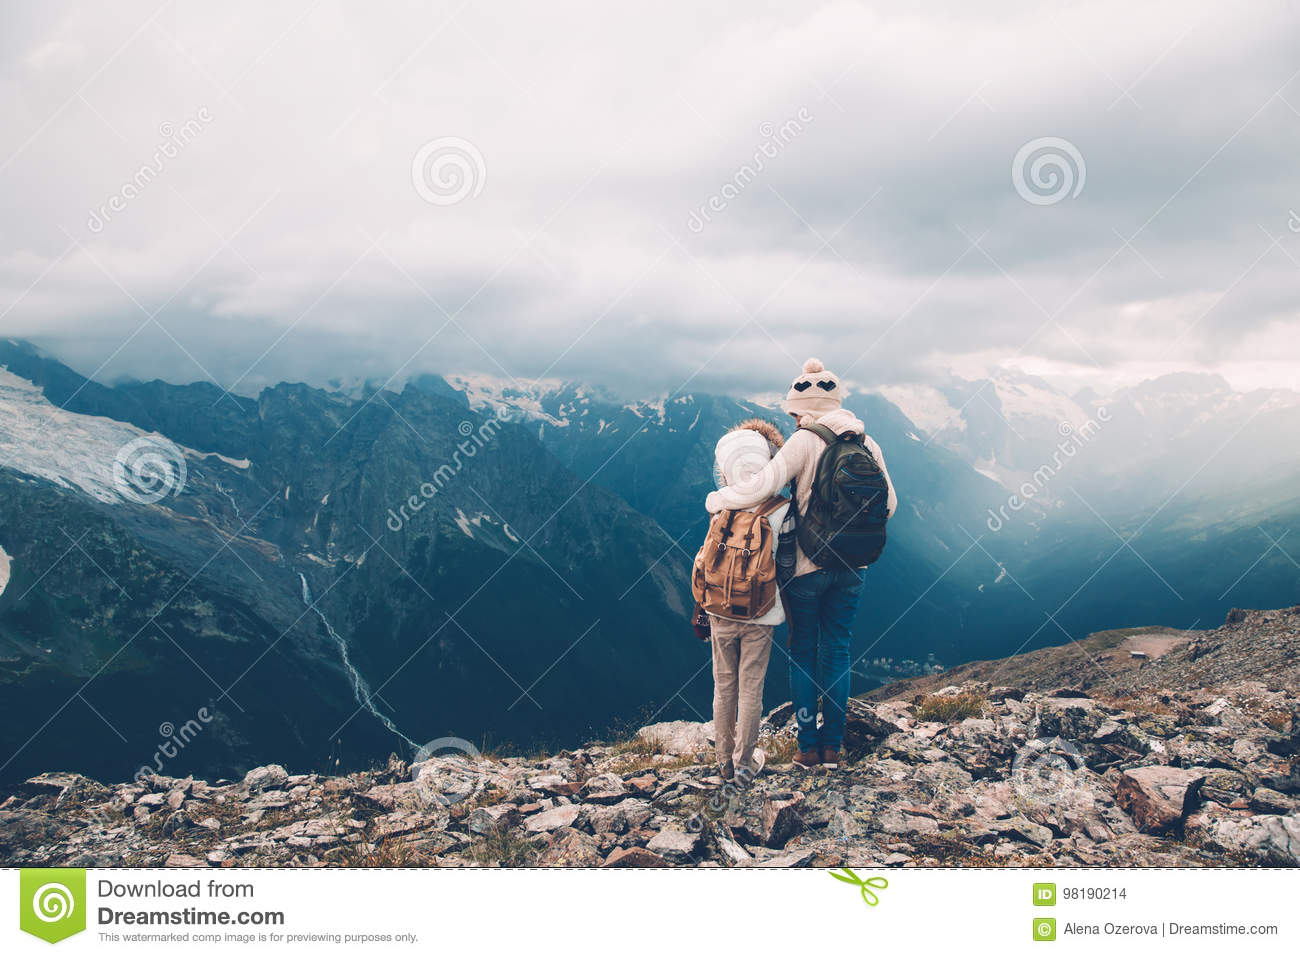 108bc09c3e Mom With Child In Mountains Stock Photo - Image of outdoor